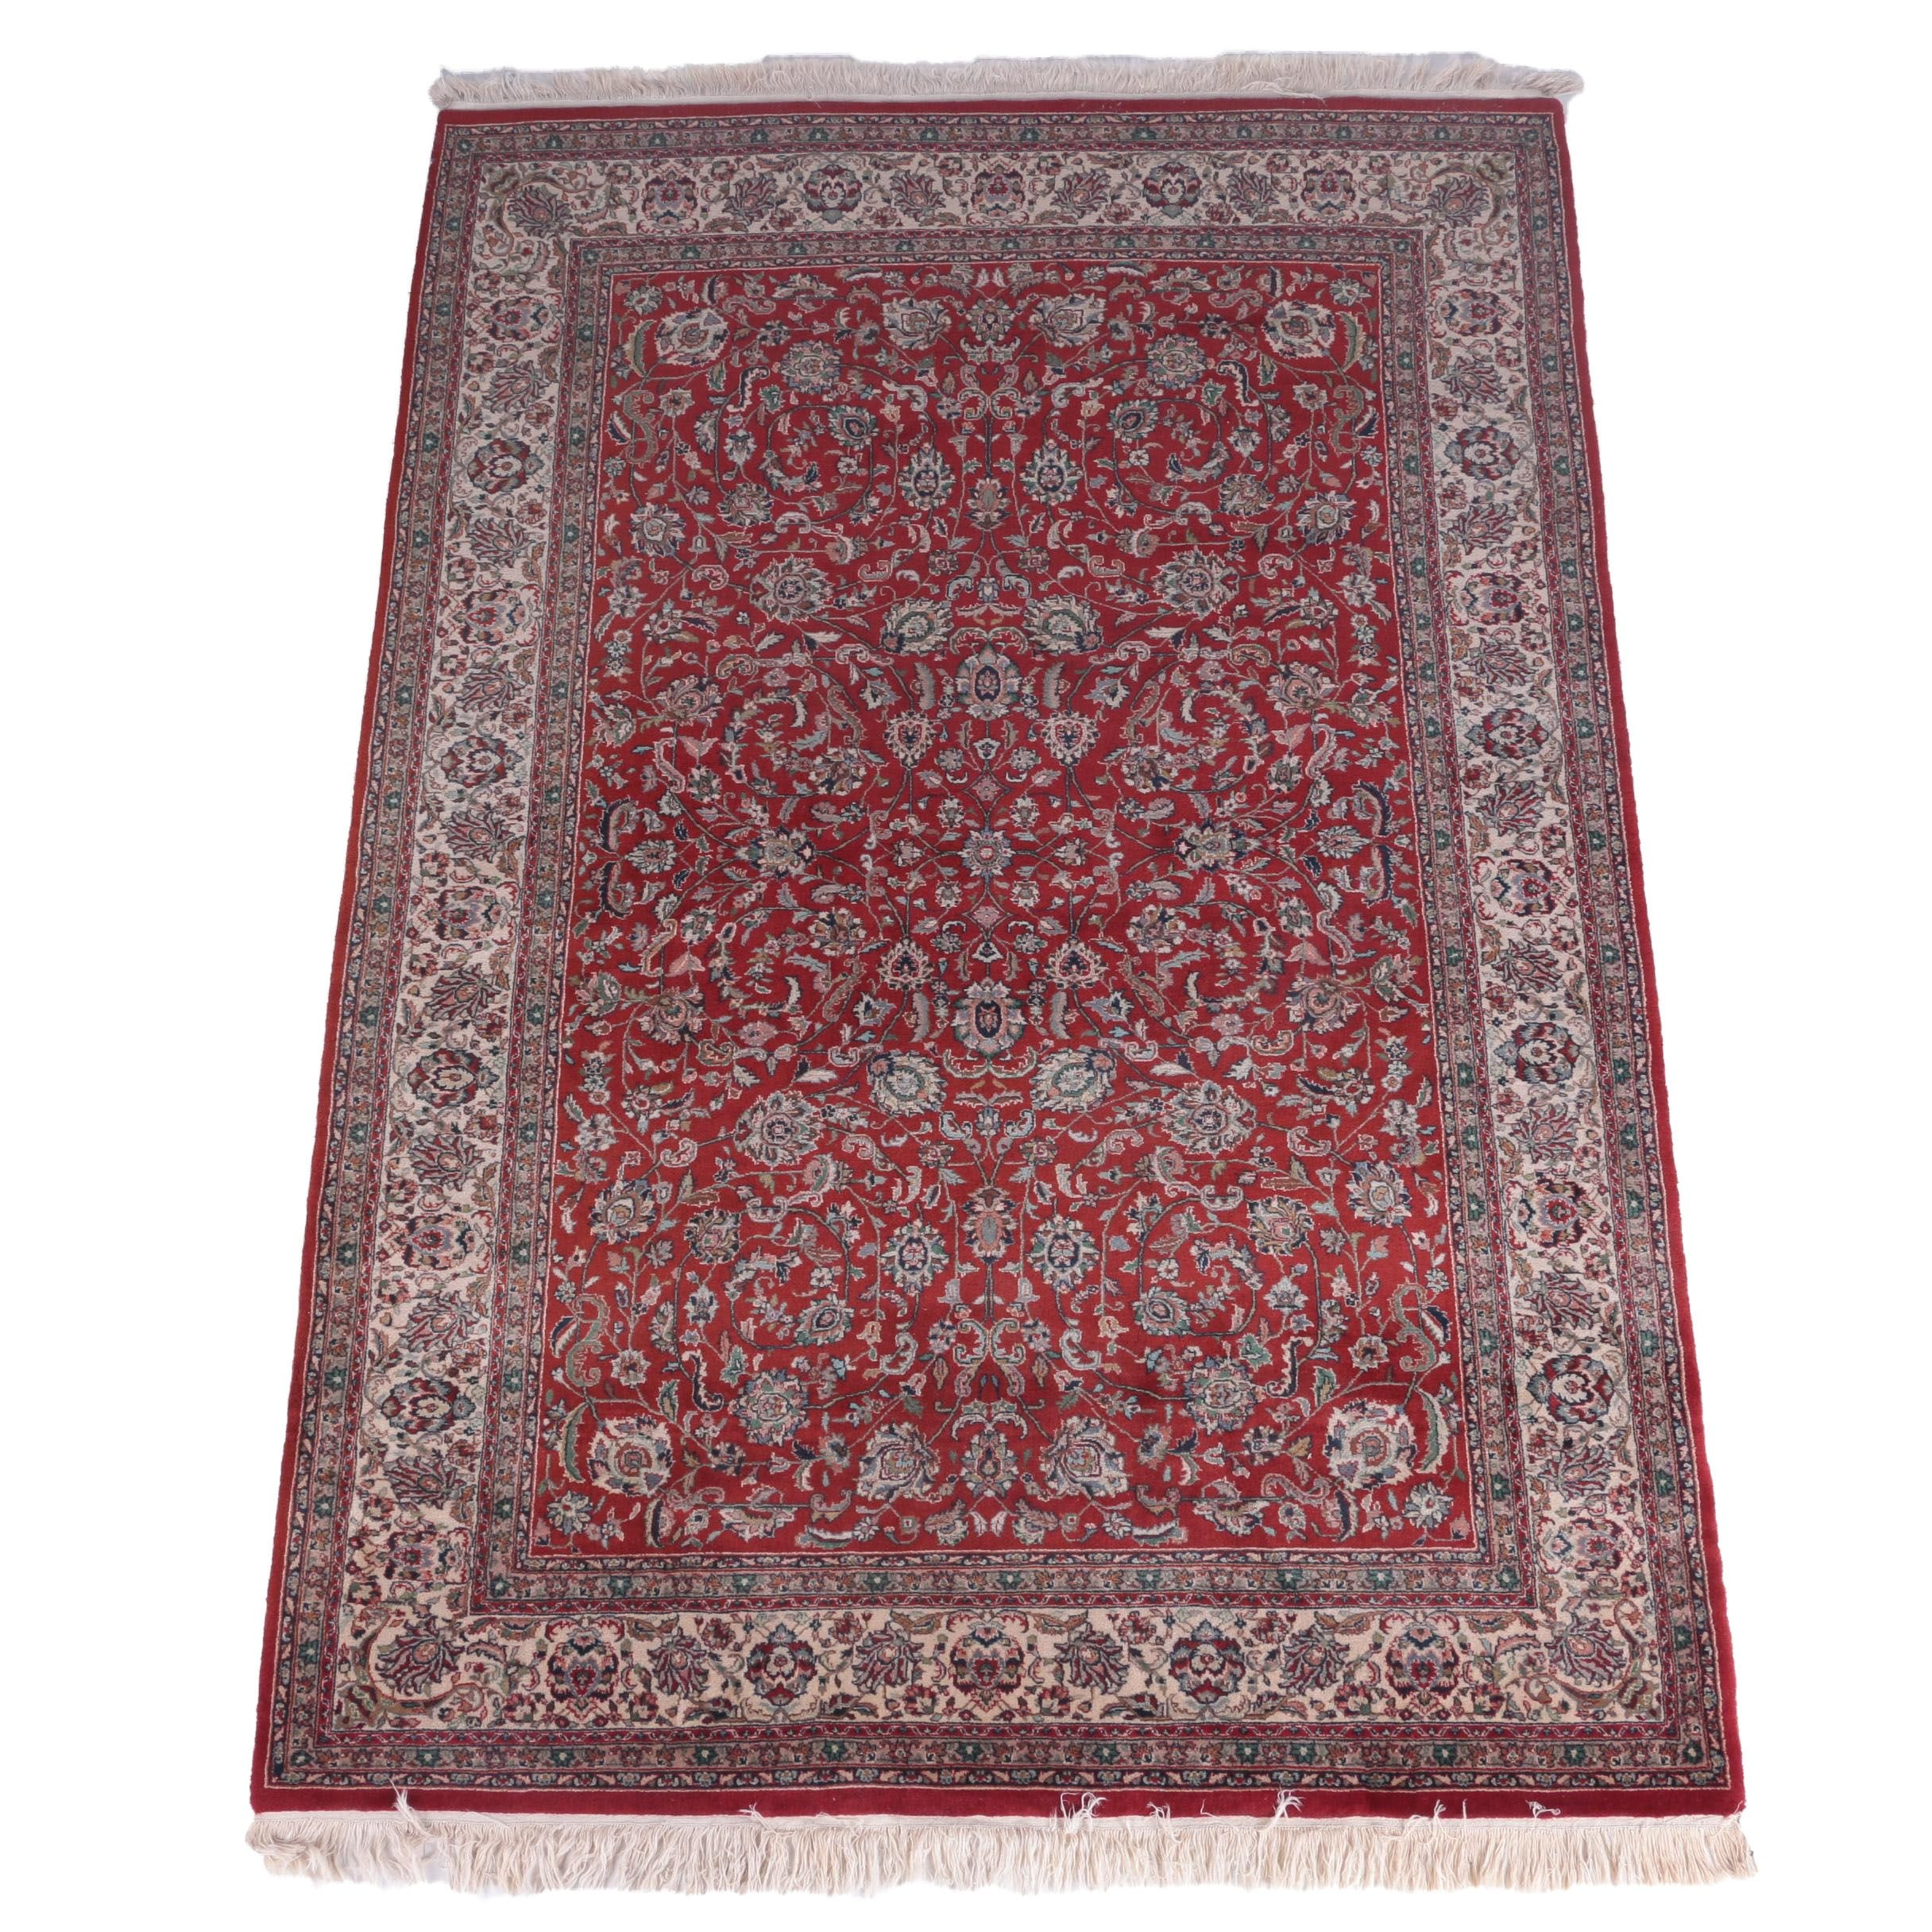 "Hand-Knotted Pande Cameron ""Sidhara"" Indo-Persian Area Rug"